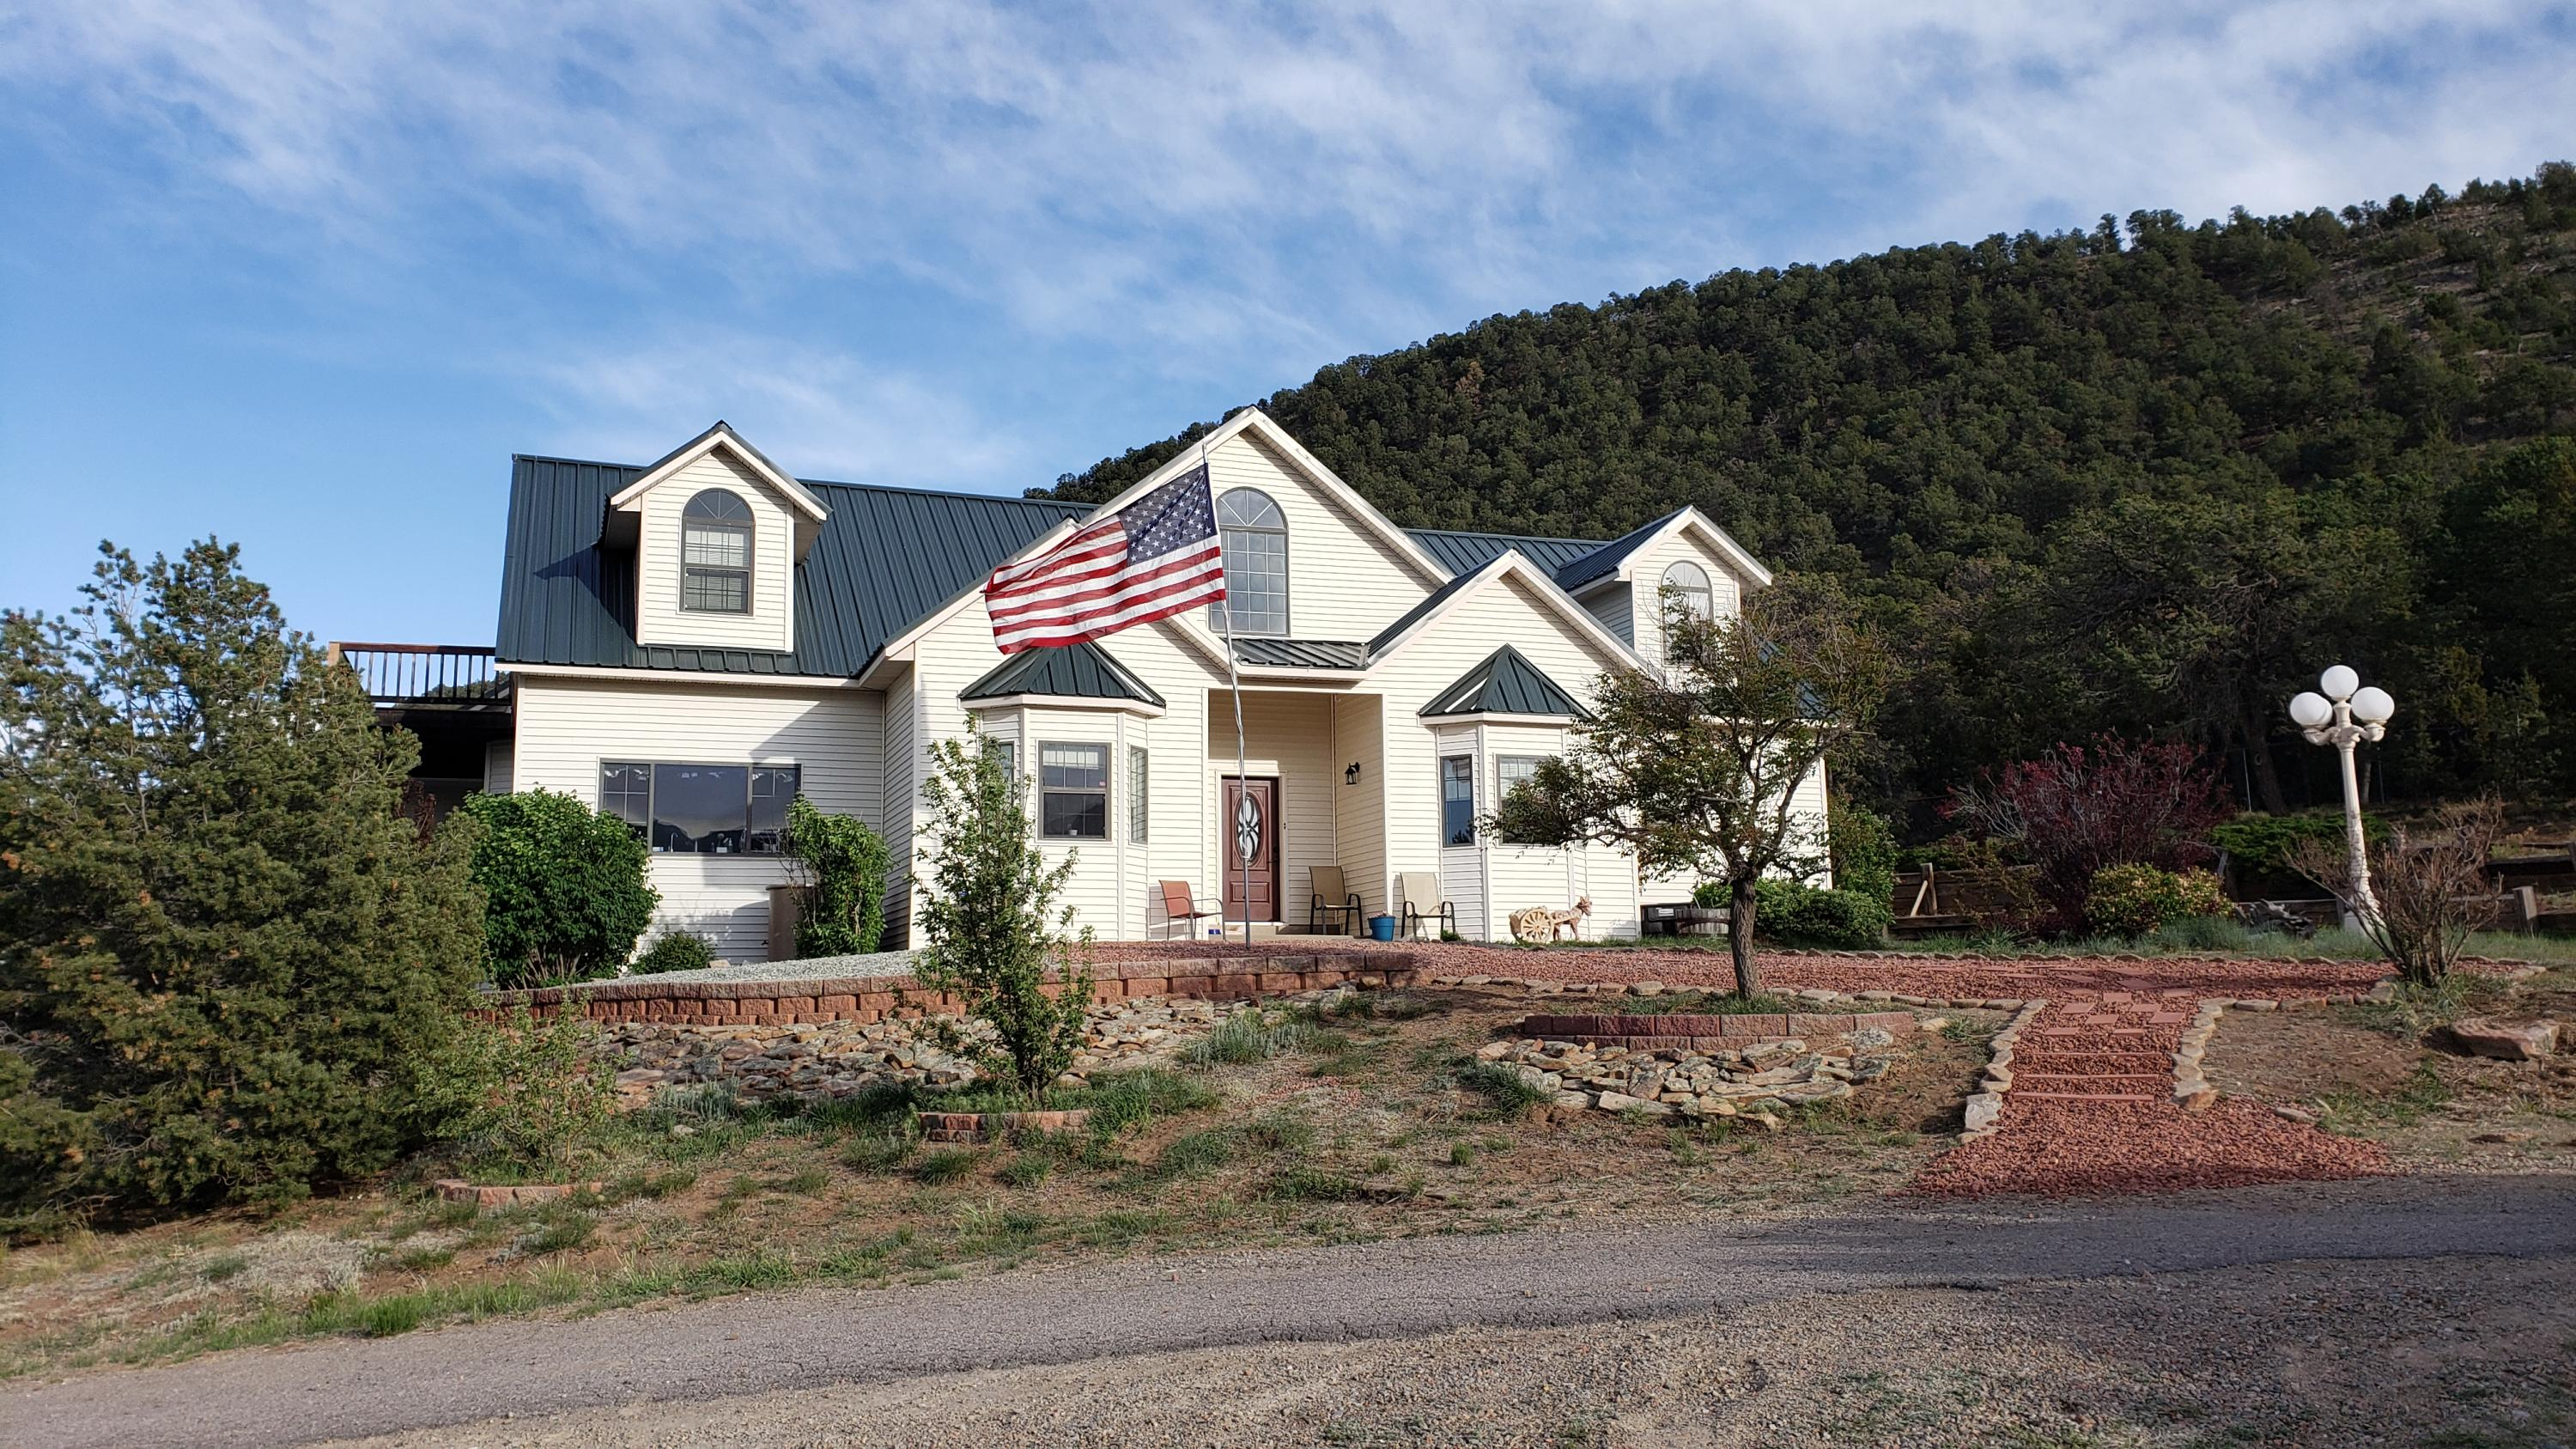 Stunning Panoramic Mountain views, fenced 3 acres with private backyard landscaped patio & 2.6 additional acreage (5.6 acres total), feels like you own your own mountain with access to hiking & riding trails. Minutes to dining & shopping close to ABQ. Incredible open floor plan, includes a beautiful master suite, three other large bedrooms, & office. Wonderful marble windowsills. Freshly painted rooms &updated lifetime flooring (redwood/waterproof}  Toilets & sink fixtures replaced in 2021. Cost saving LED lighting. Easy cleaning Harmon Pellet stove sized to heat the home. Modern water system includes a well & rainwater harvest (7100 gallon) making this East MTN home drought resistant. Spacious 4 stall horse barn, 3 car garage, fruit trees & shed.